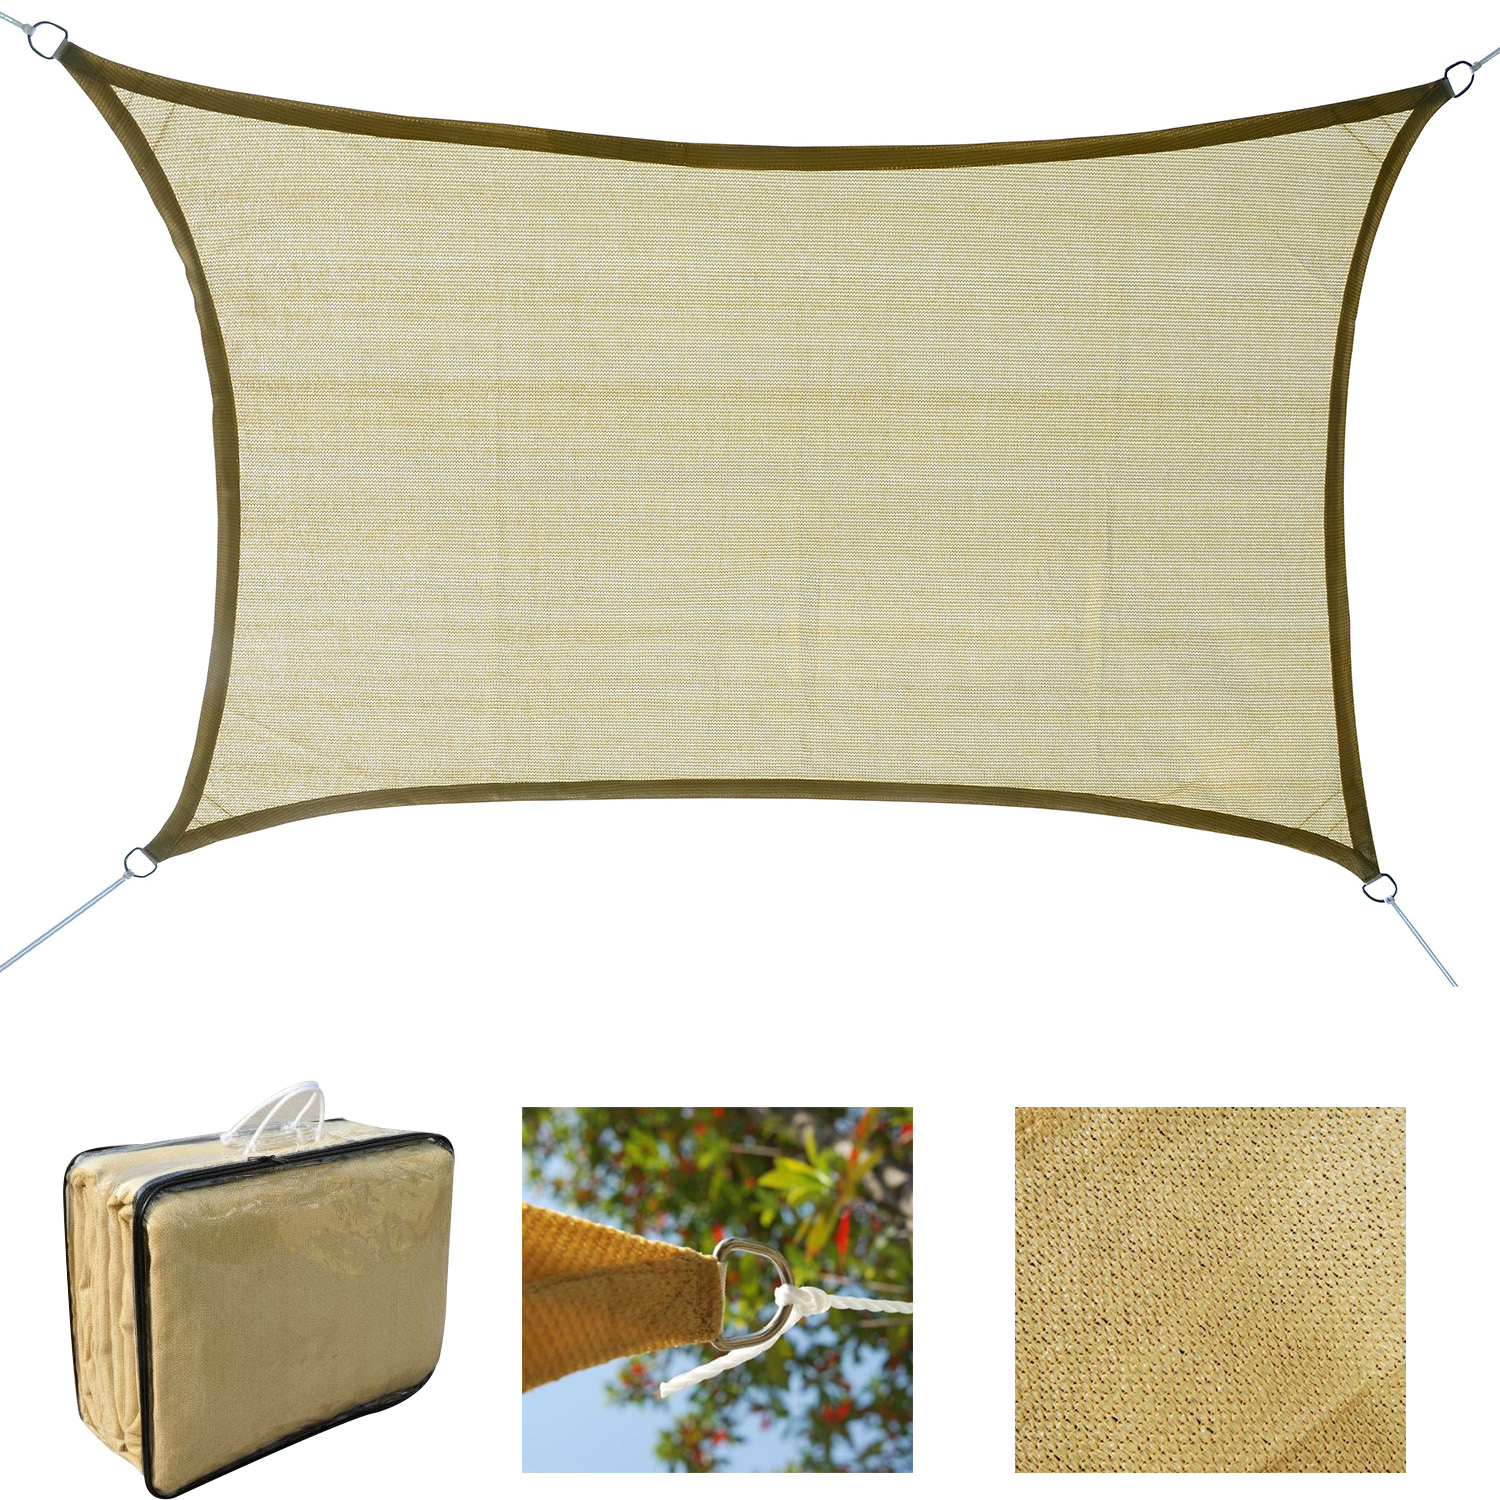 Sun-Shade-Sail-UV-Top-Cover-Outdoor-Canopy-Patio-Triangle-Square-Rectangle-w-Bag thumbnail 10